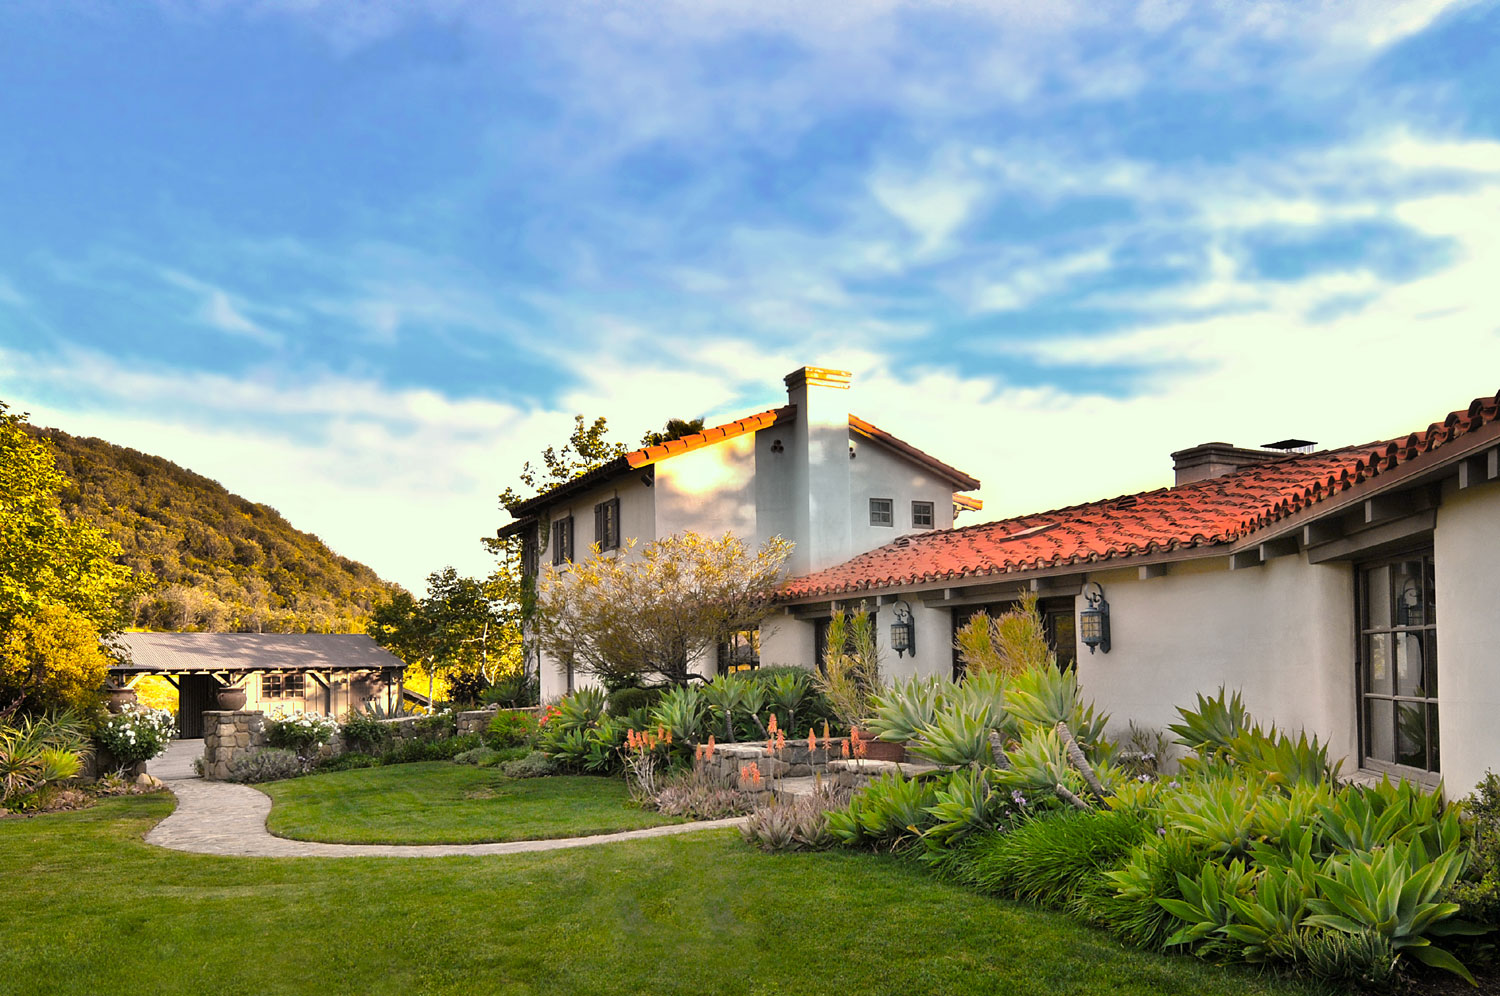 Beautifully landscaped grounds are a highlight of the Ojai residence.